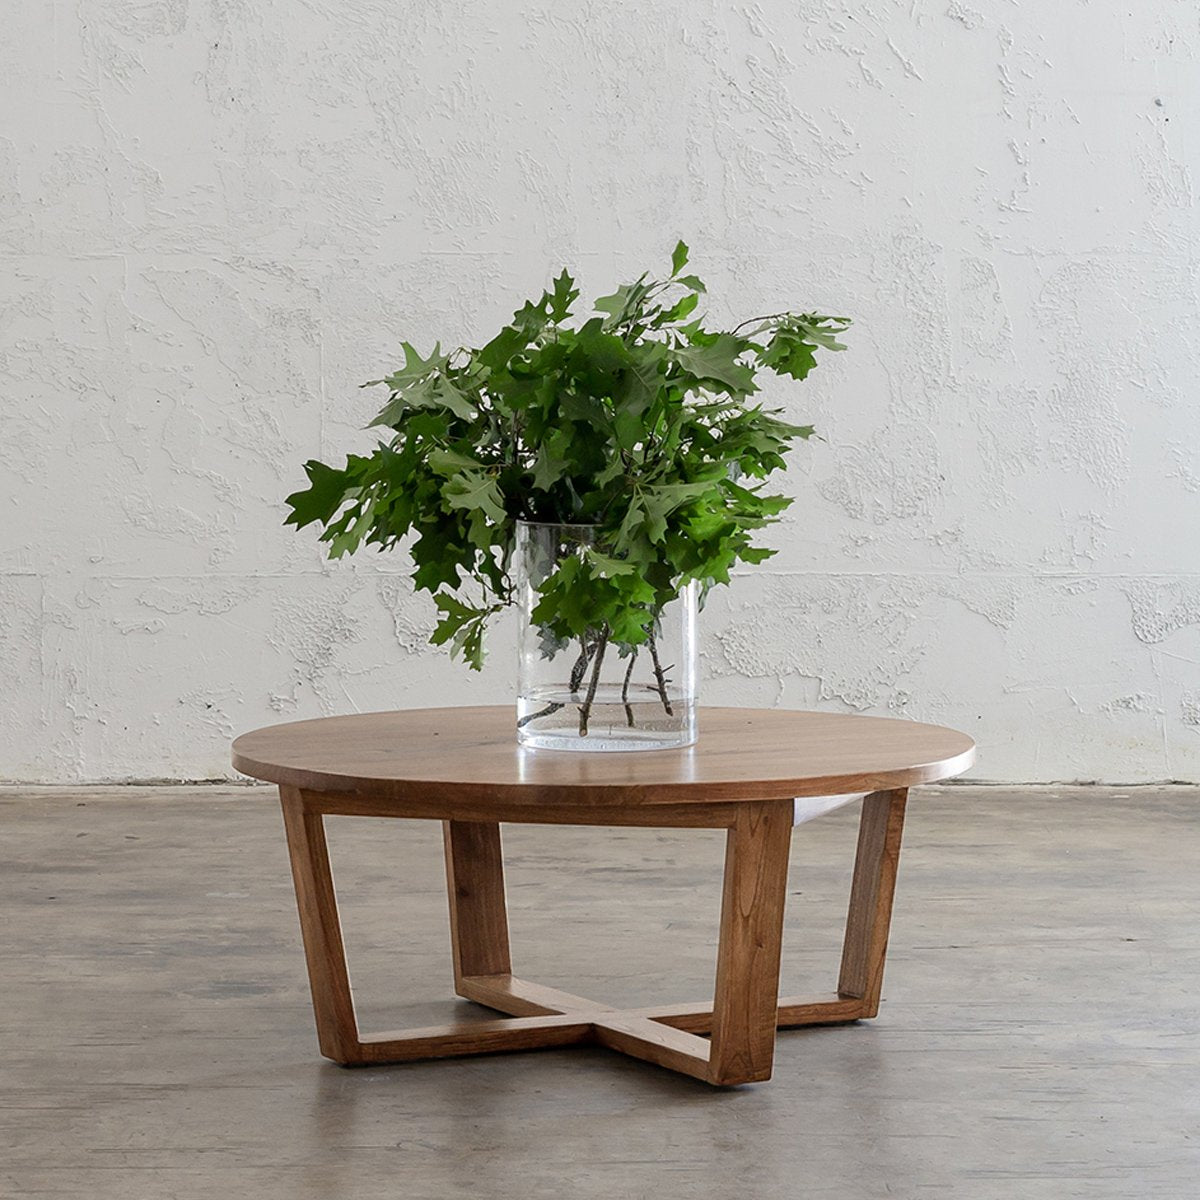 AMARA MID CENTURY TIMBER COFFEE TABLE  |  PLAIN TOP | ROUND